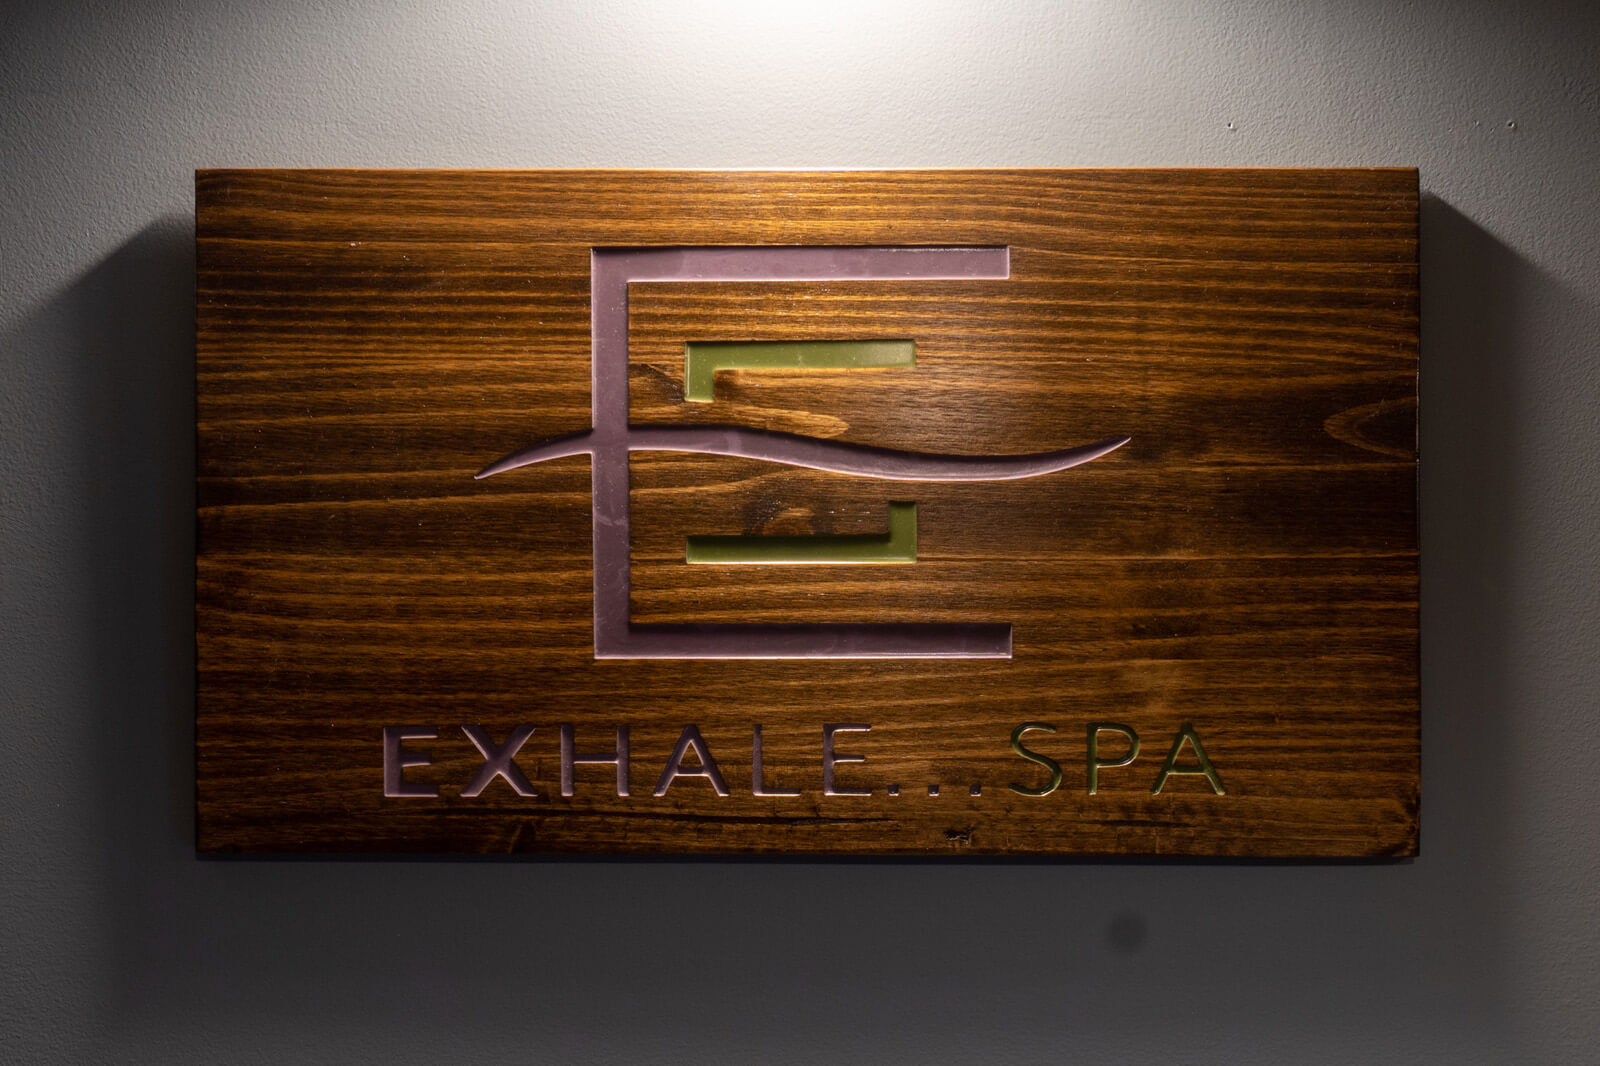 45_dsc03148 Salon Gallery - Exhale...Spa